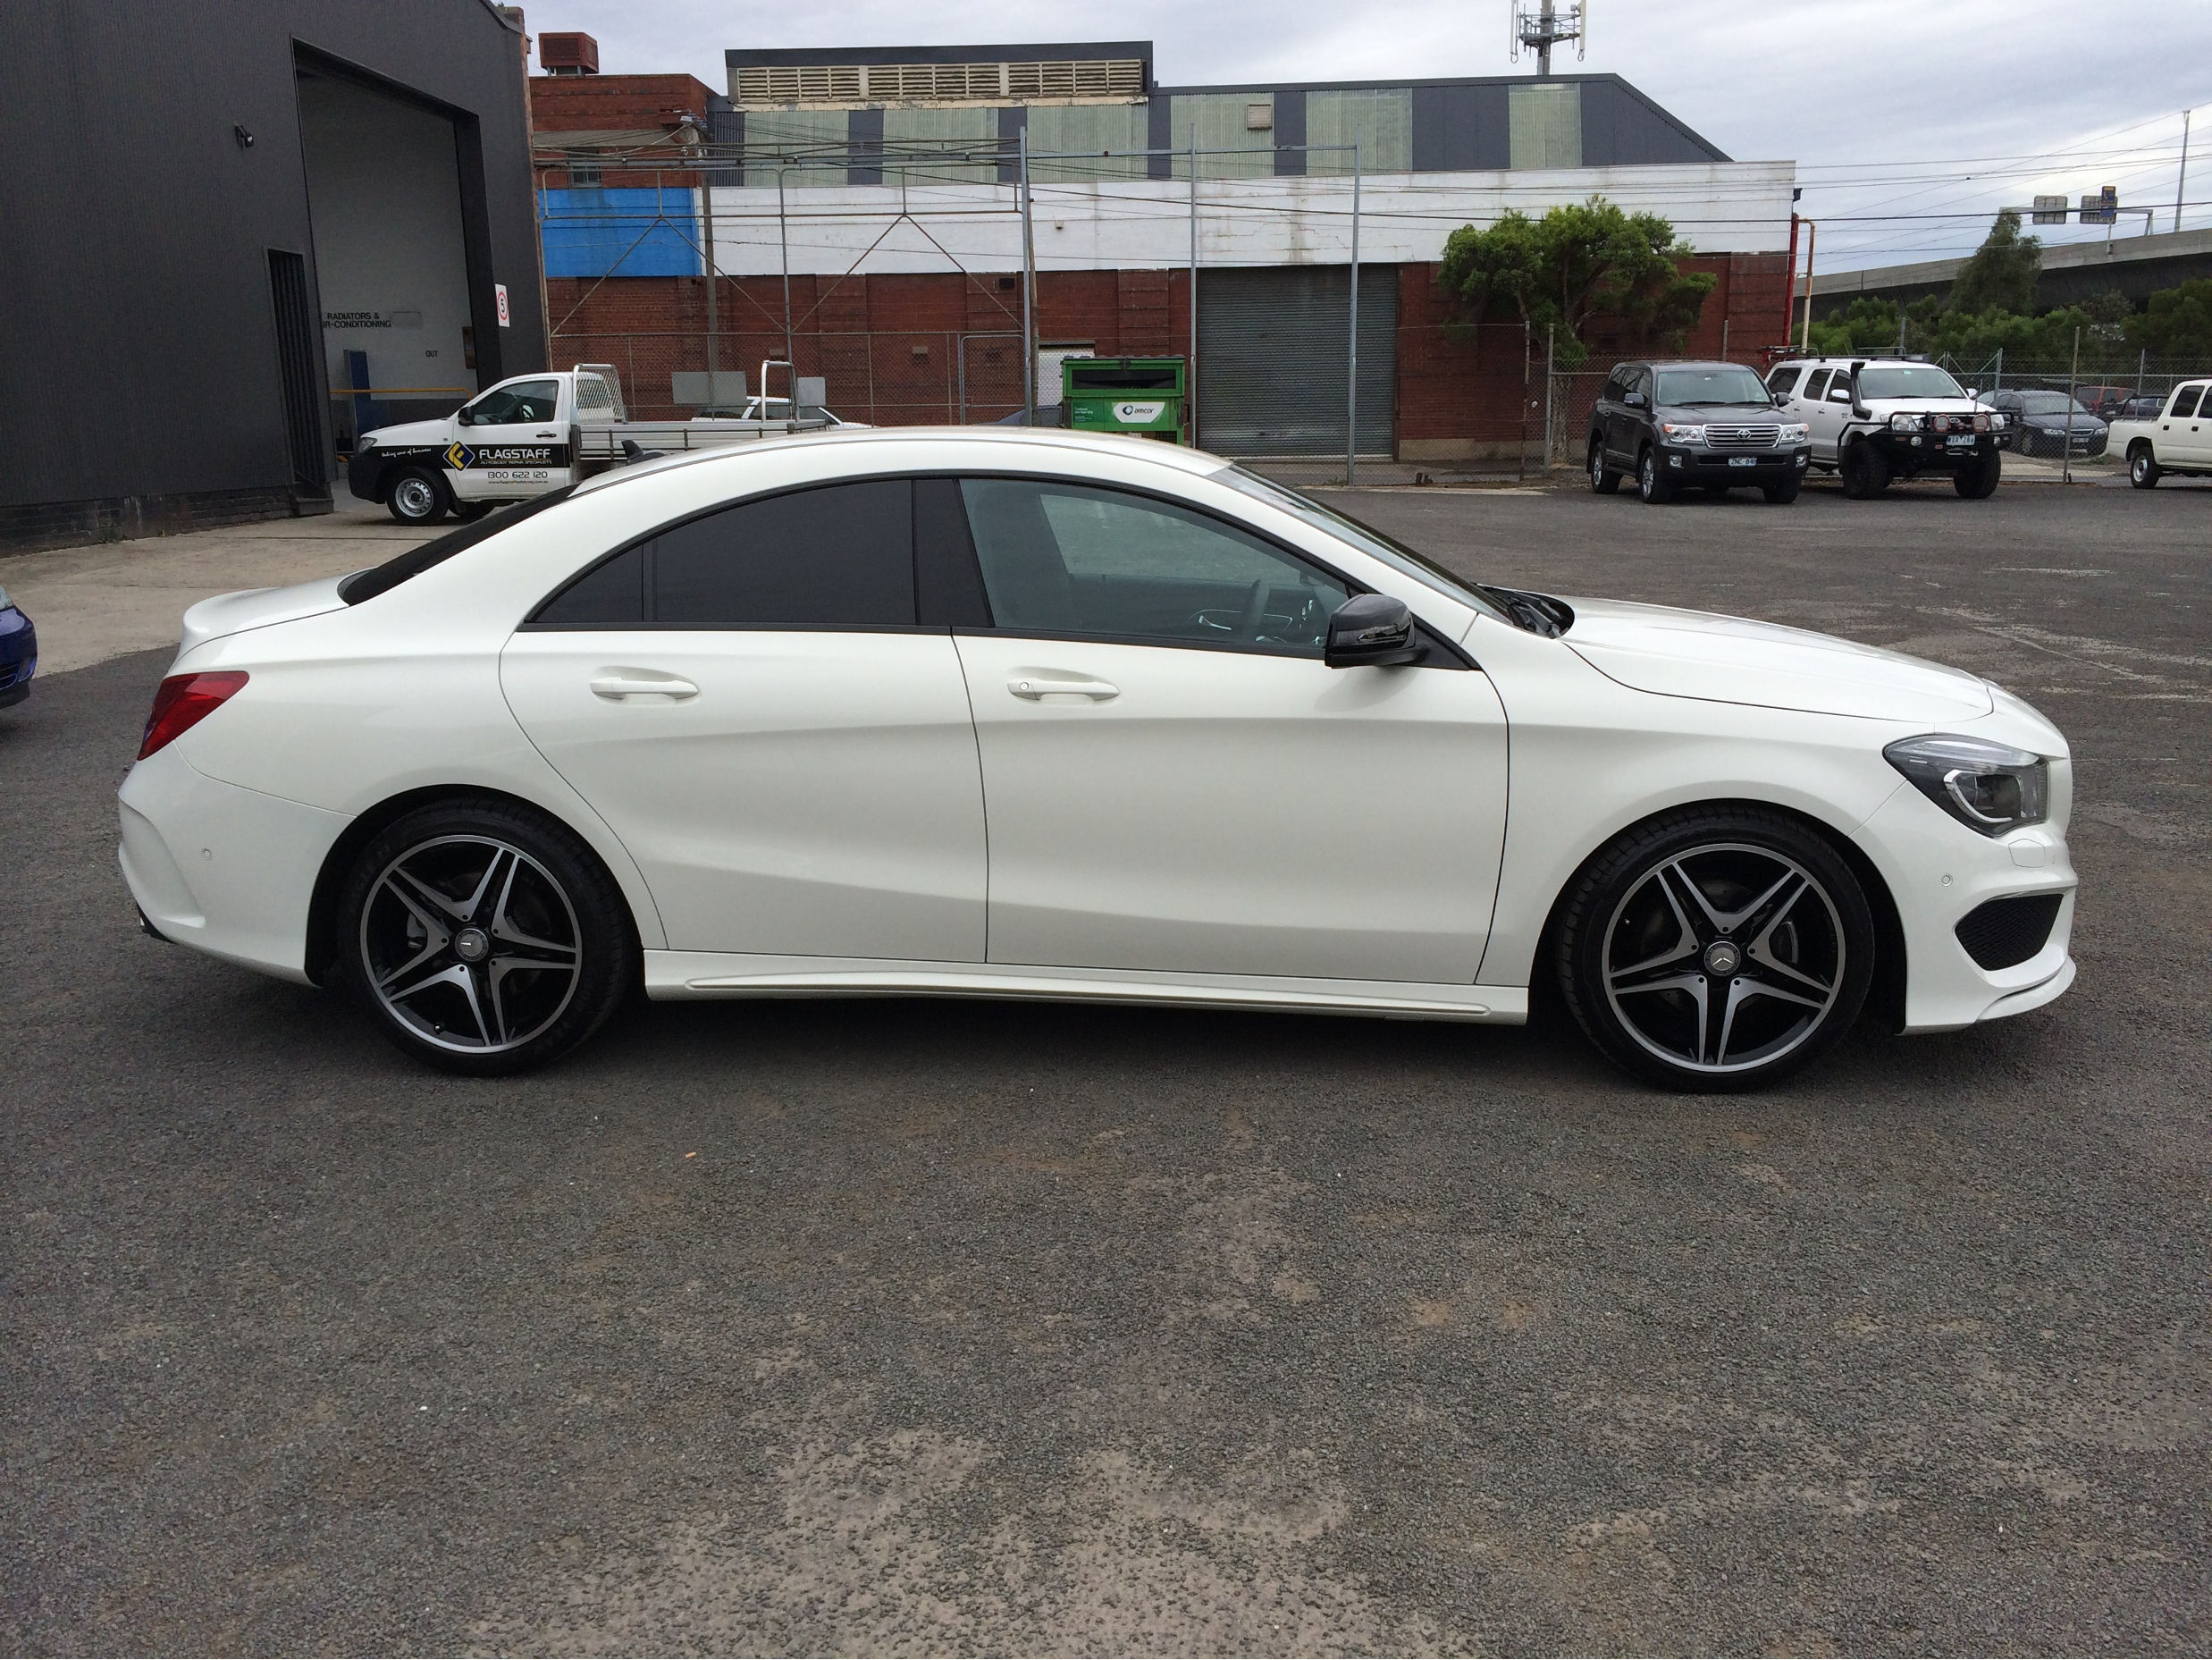 Mercedes benz cla200 panel beating photos flagstaff for Mercedes benz of flagstaff